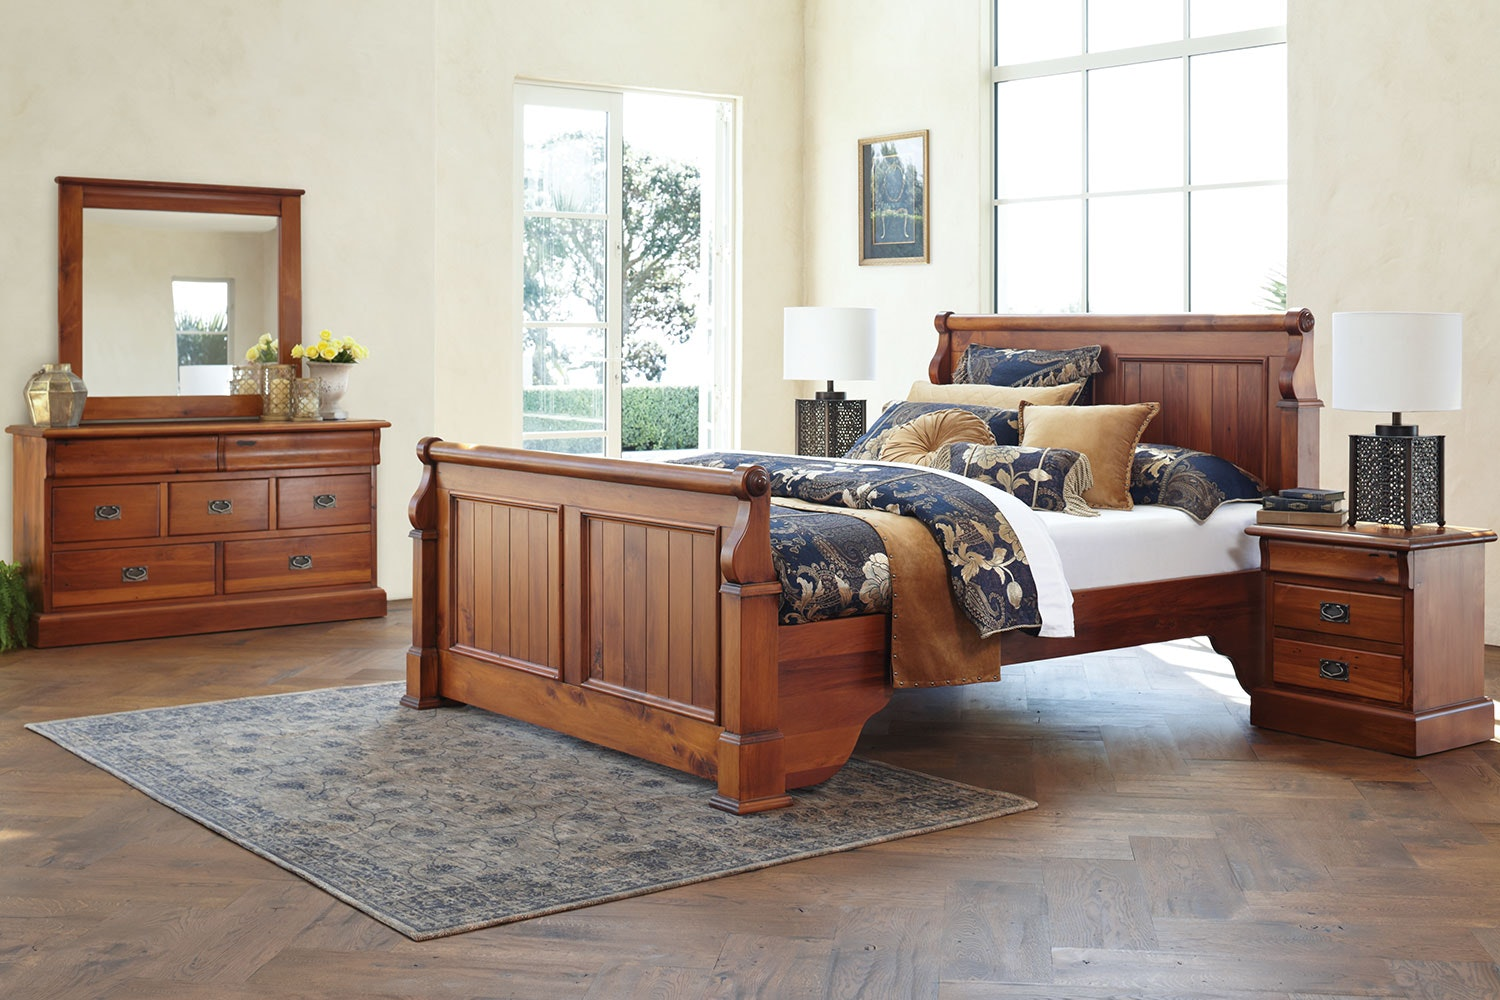 Clevedon 4 Piece Queen Dresser and Mirror Bedroom Suite by Woodpeckers